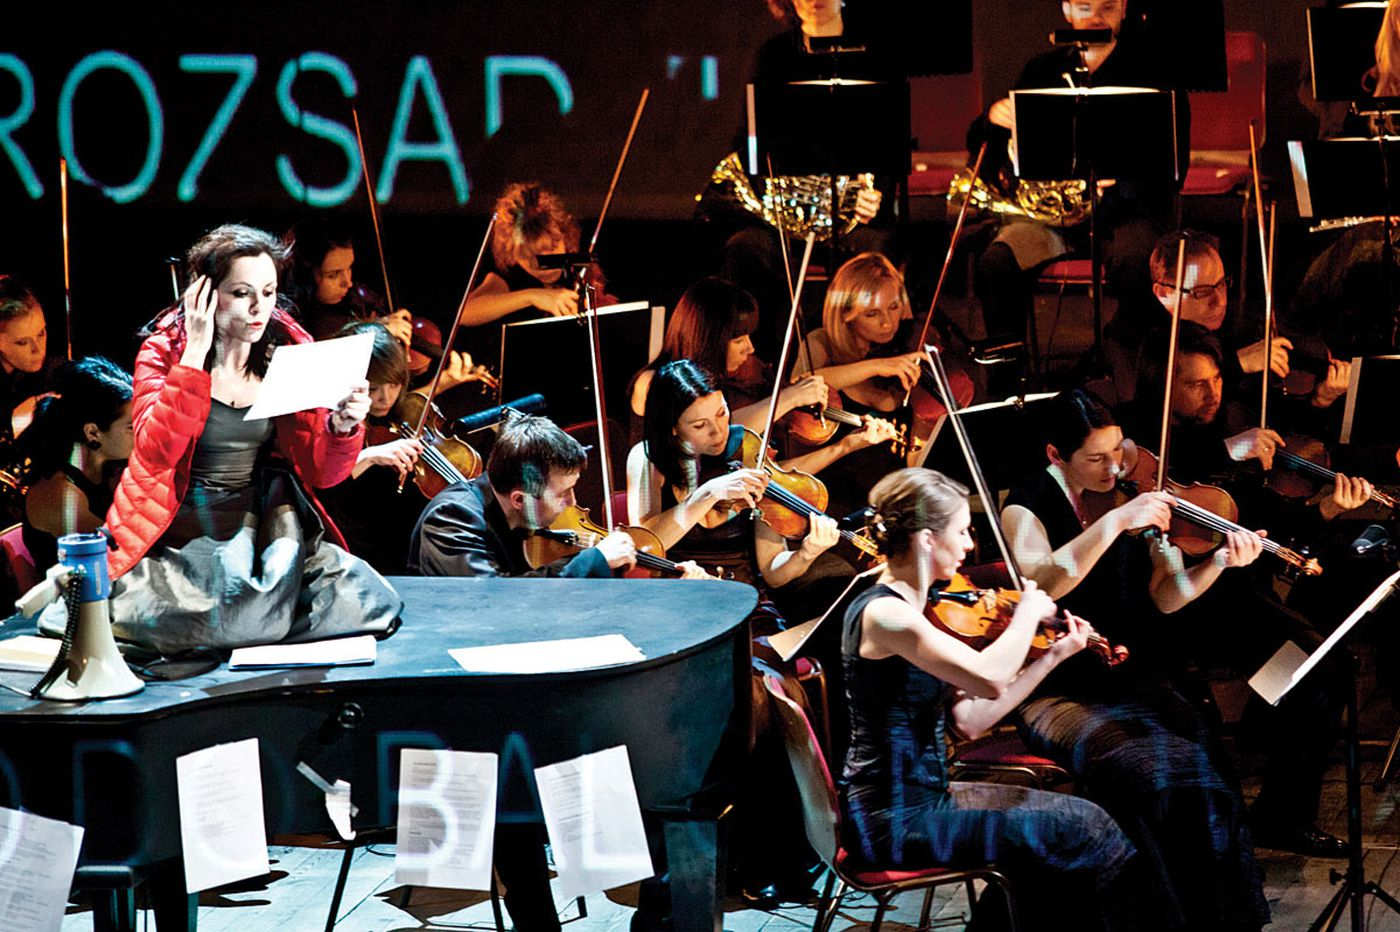 When a play subtracts the piano, a voice steps in